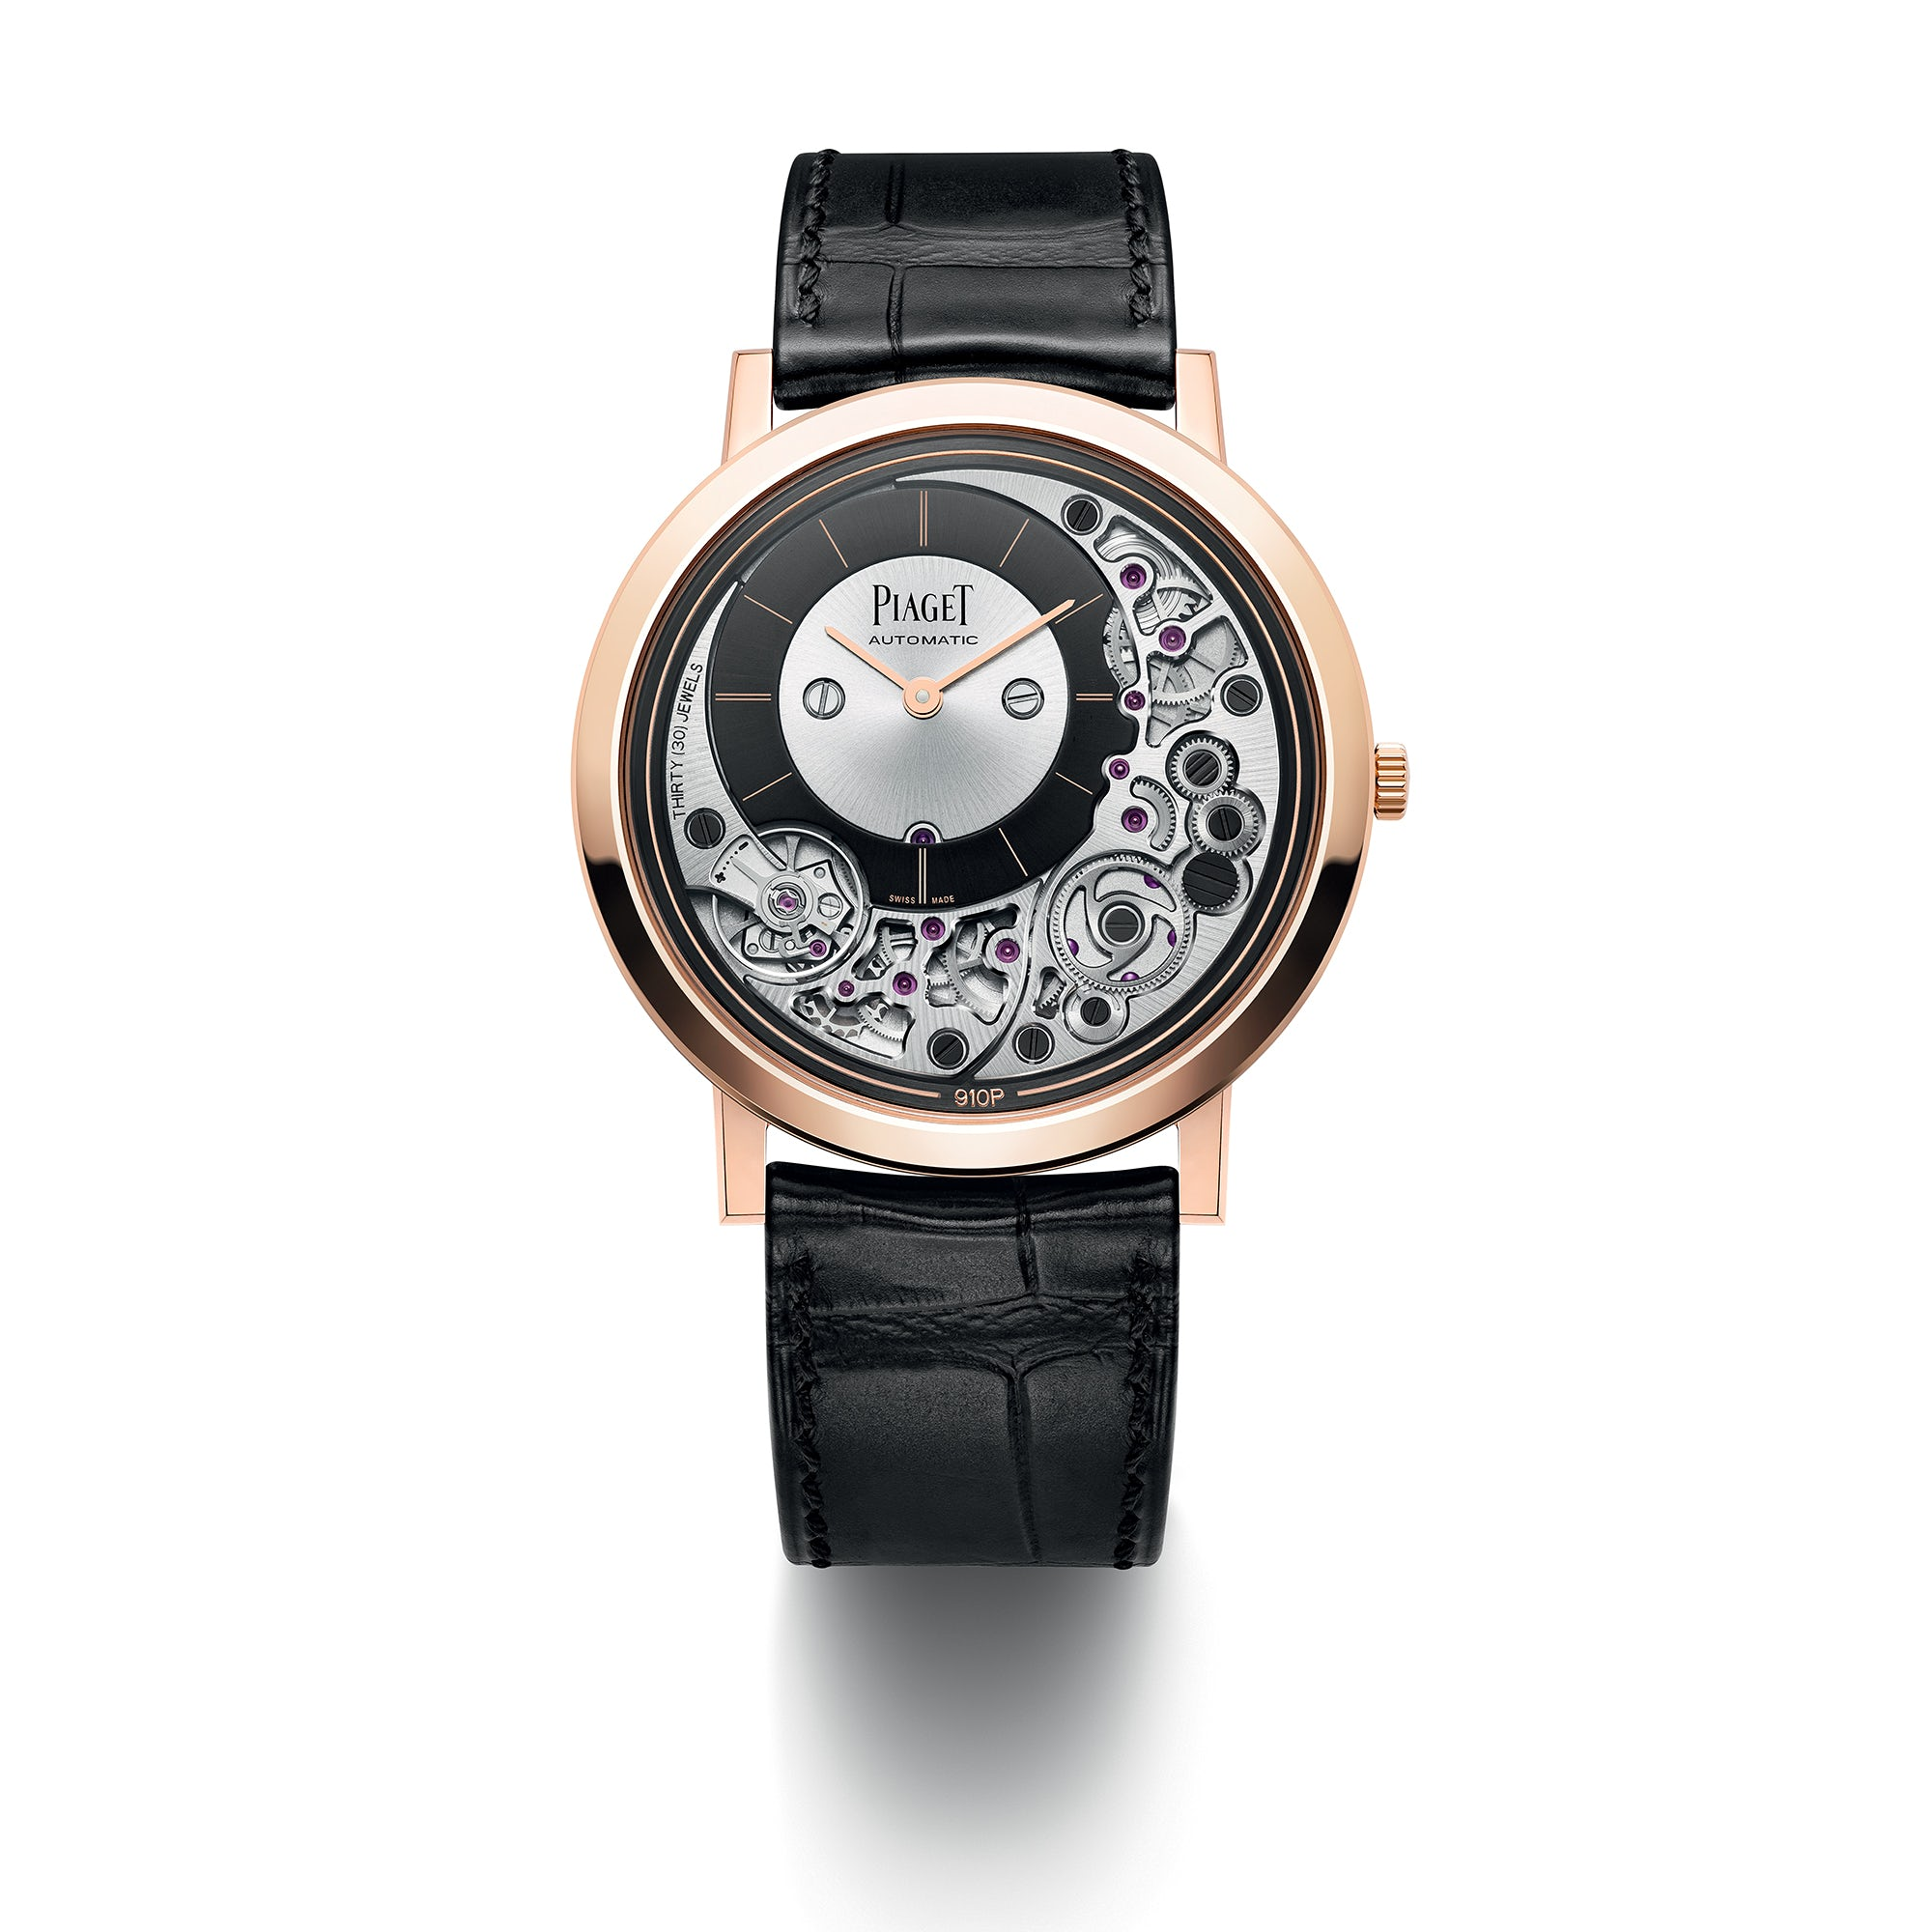 Piaget-Altiplano-Ultimate-910P-3.jpg